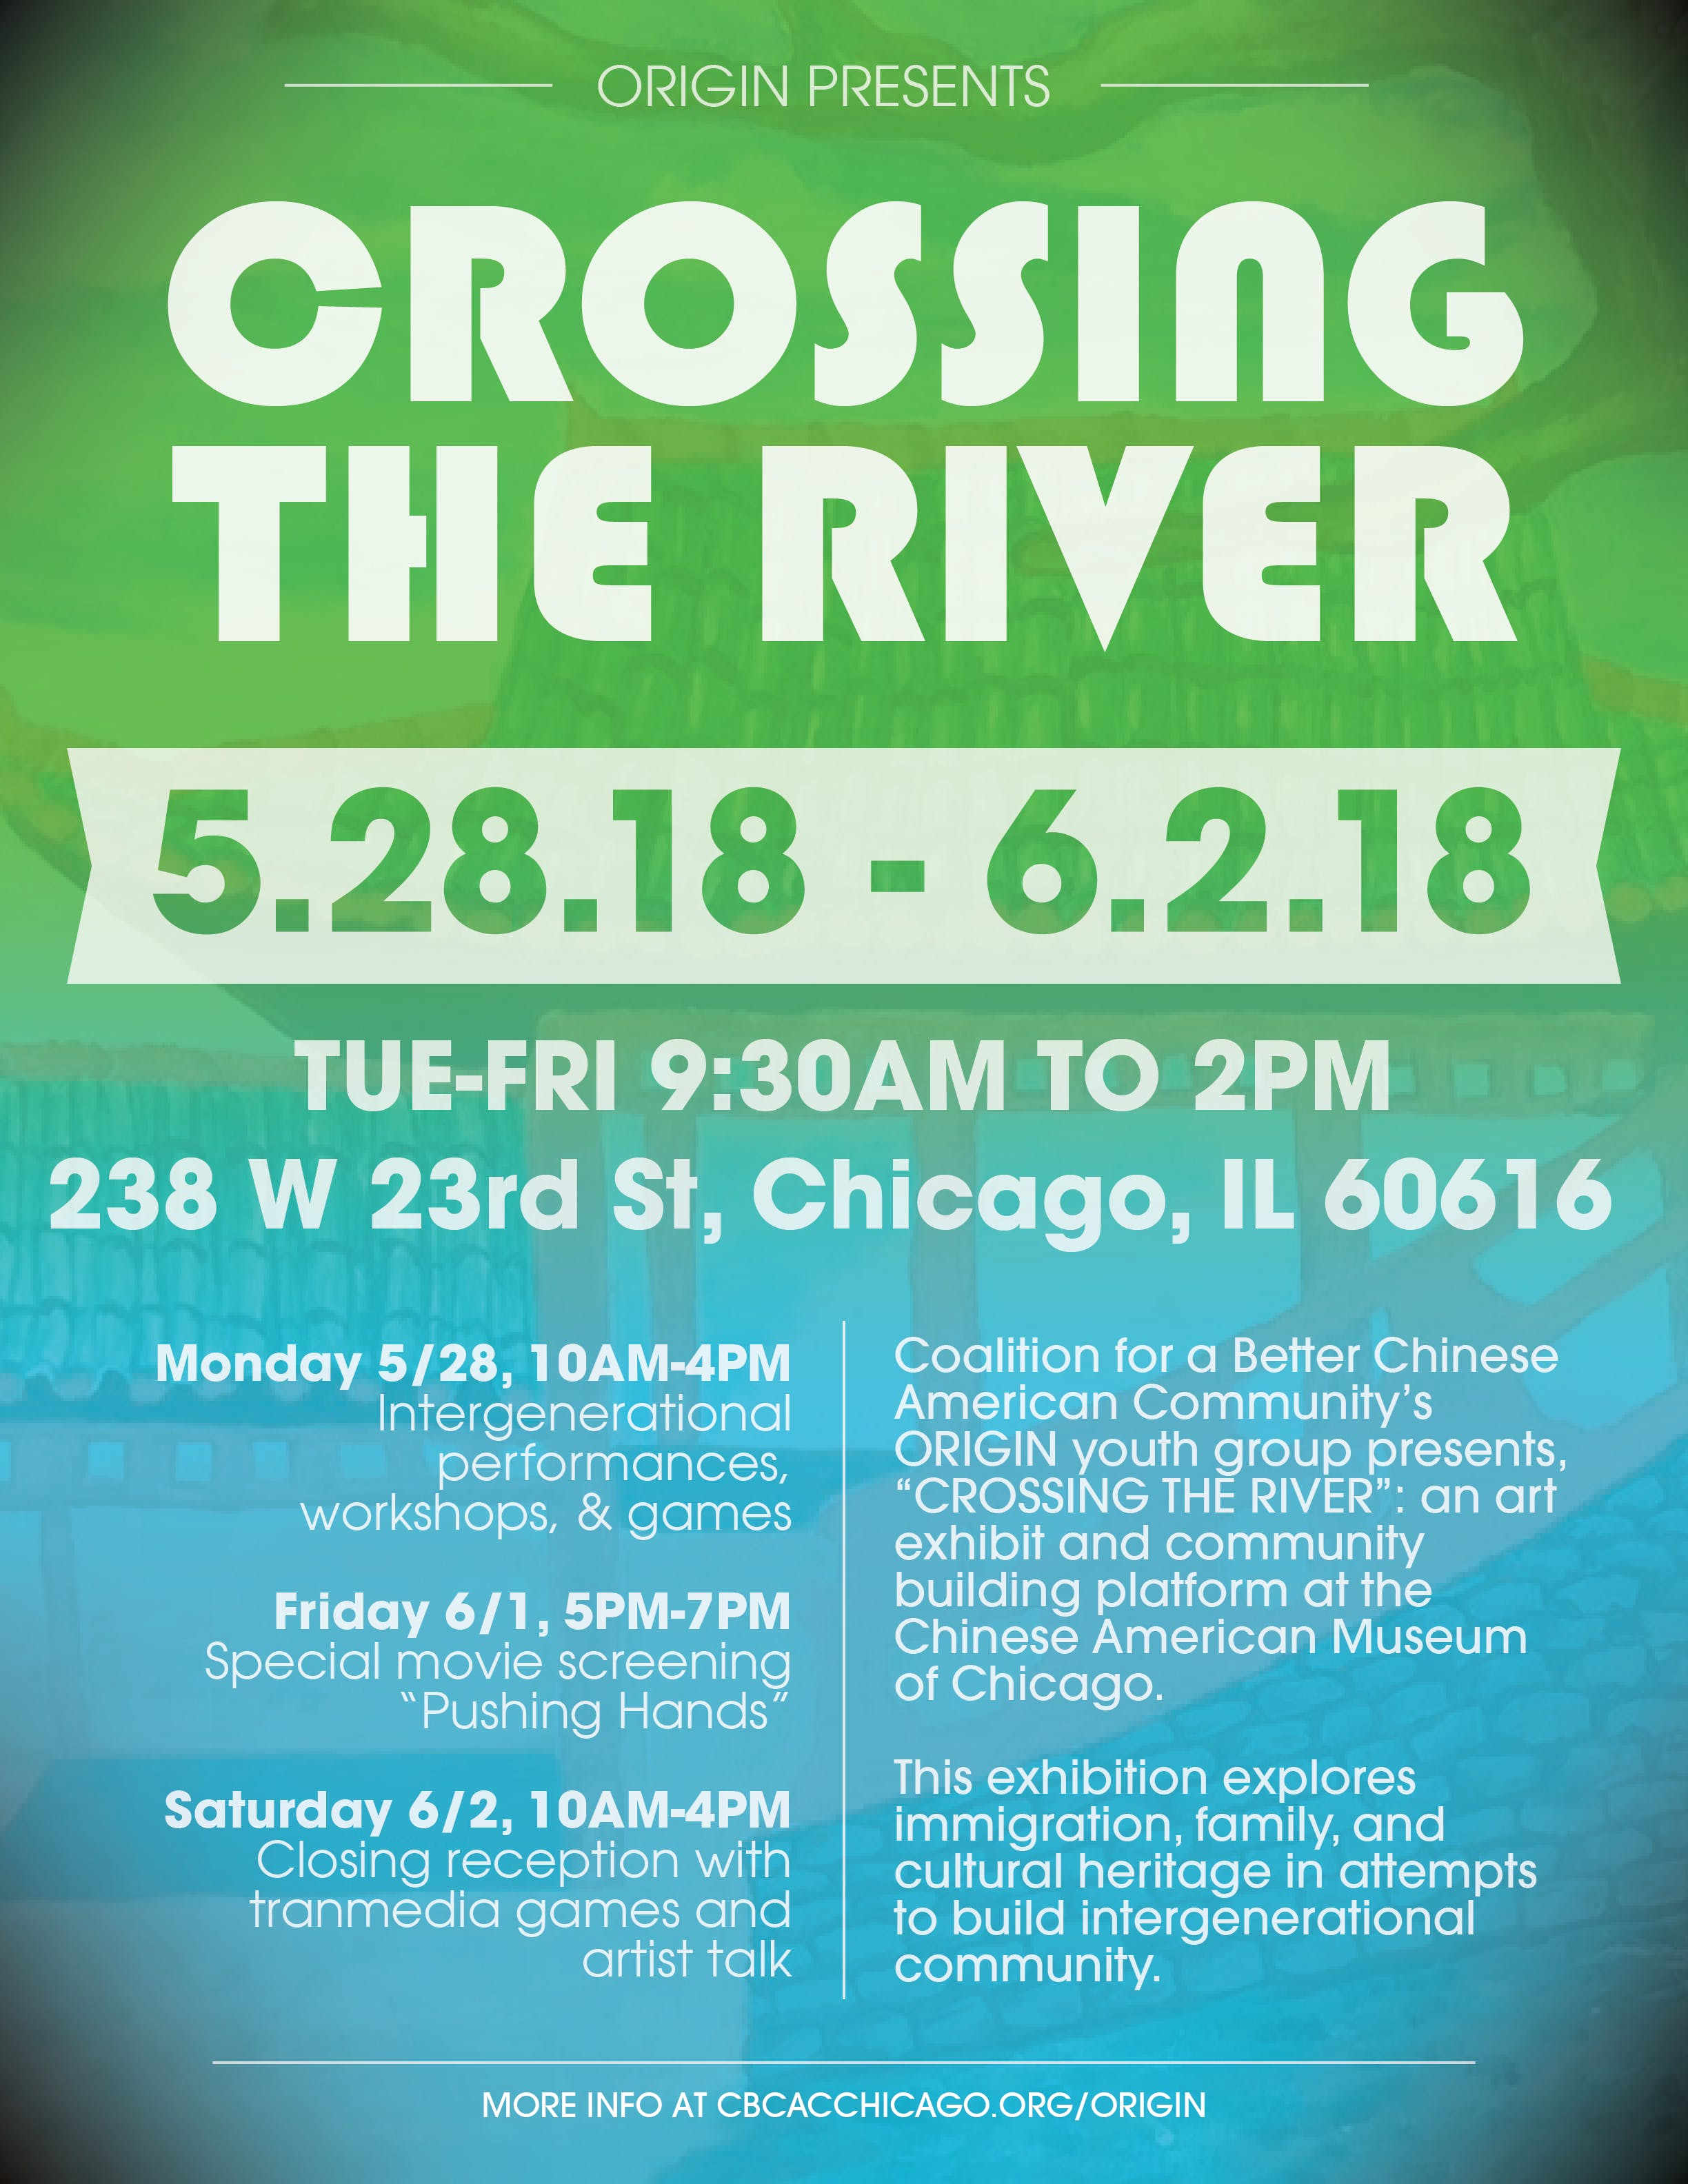 ORIGIN presents: Crossing the River